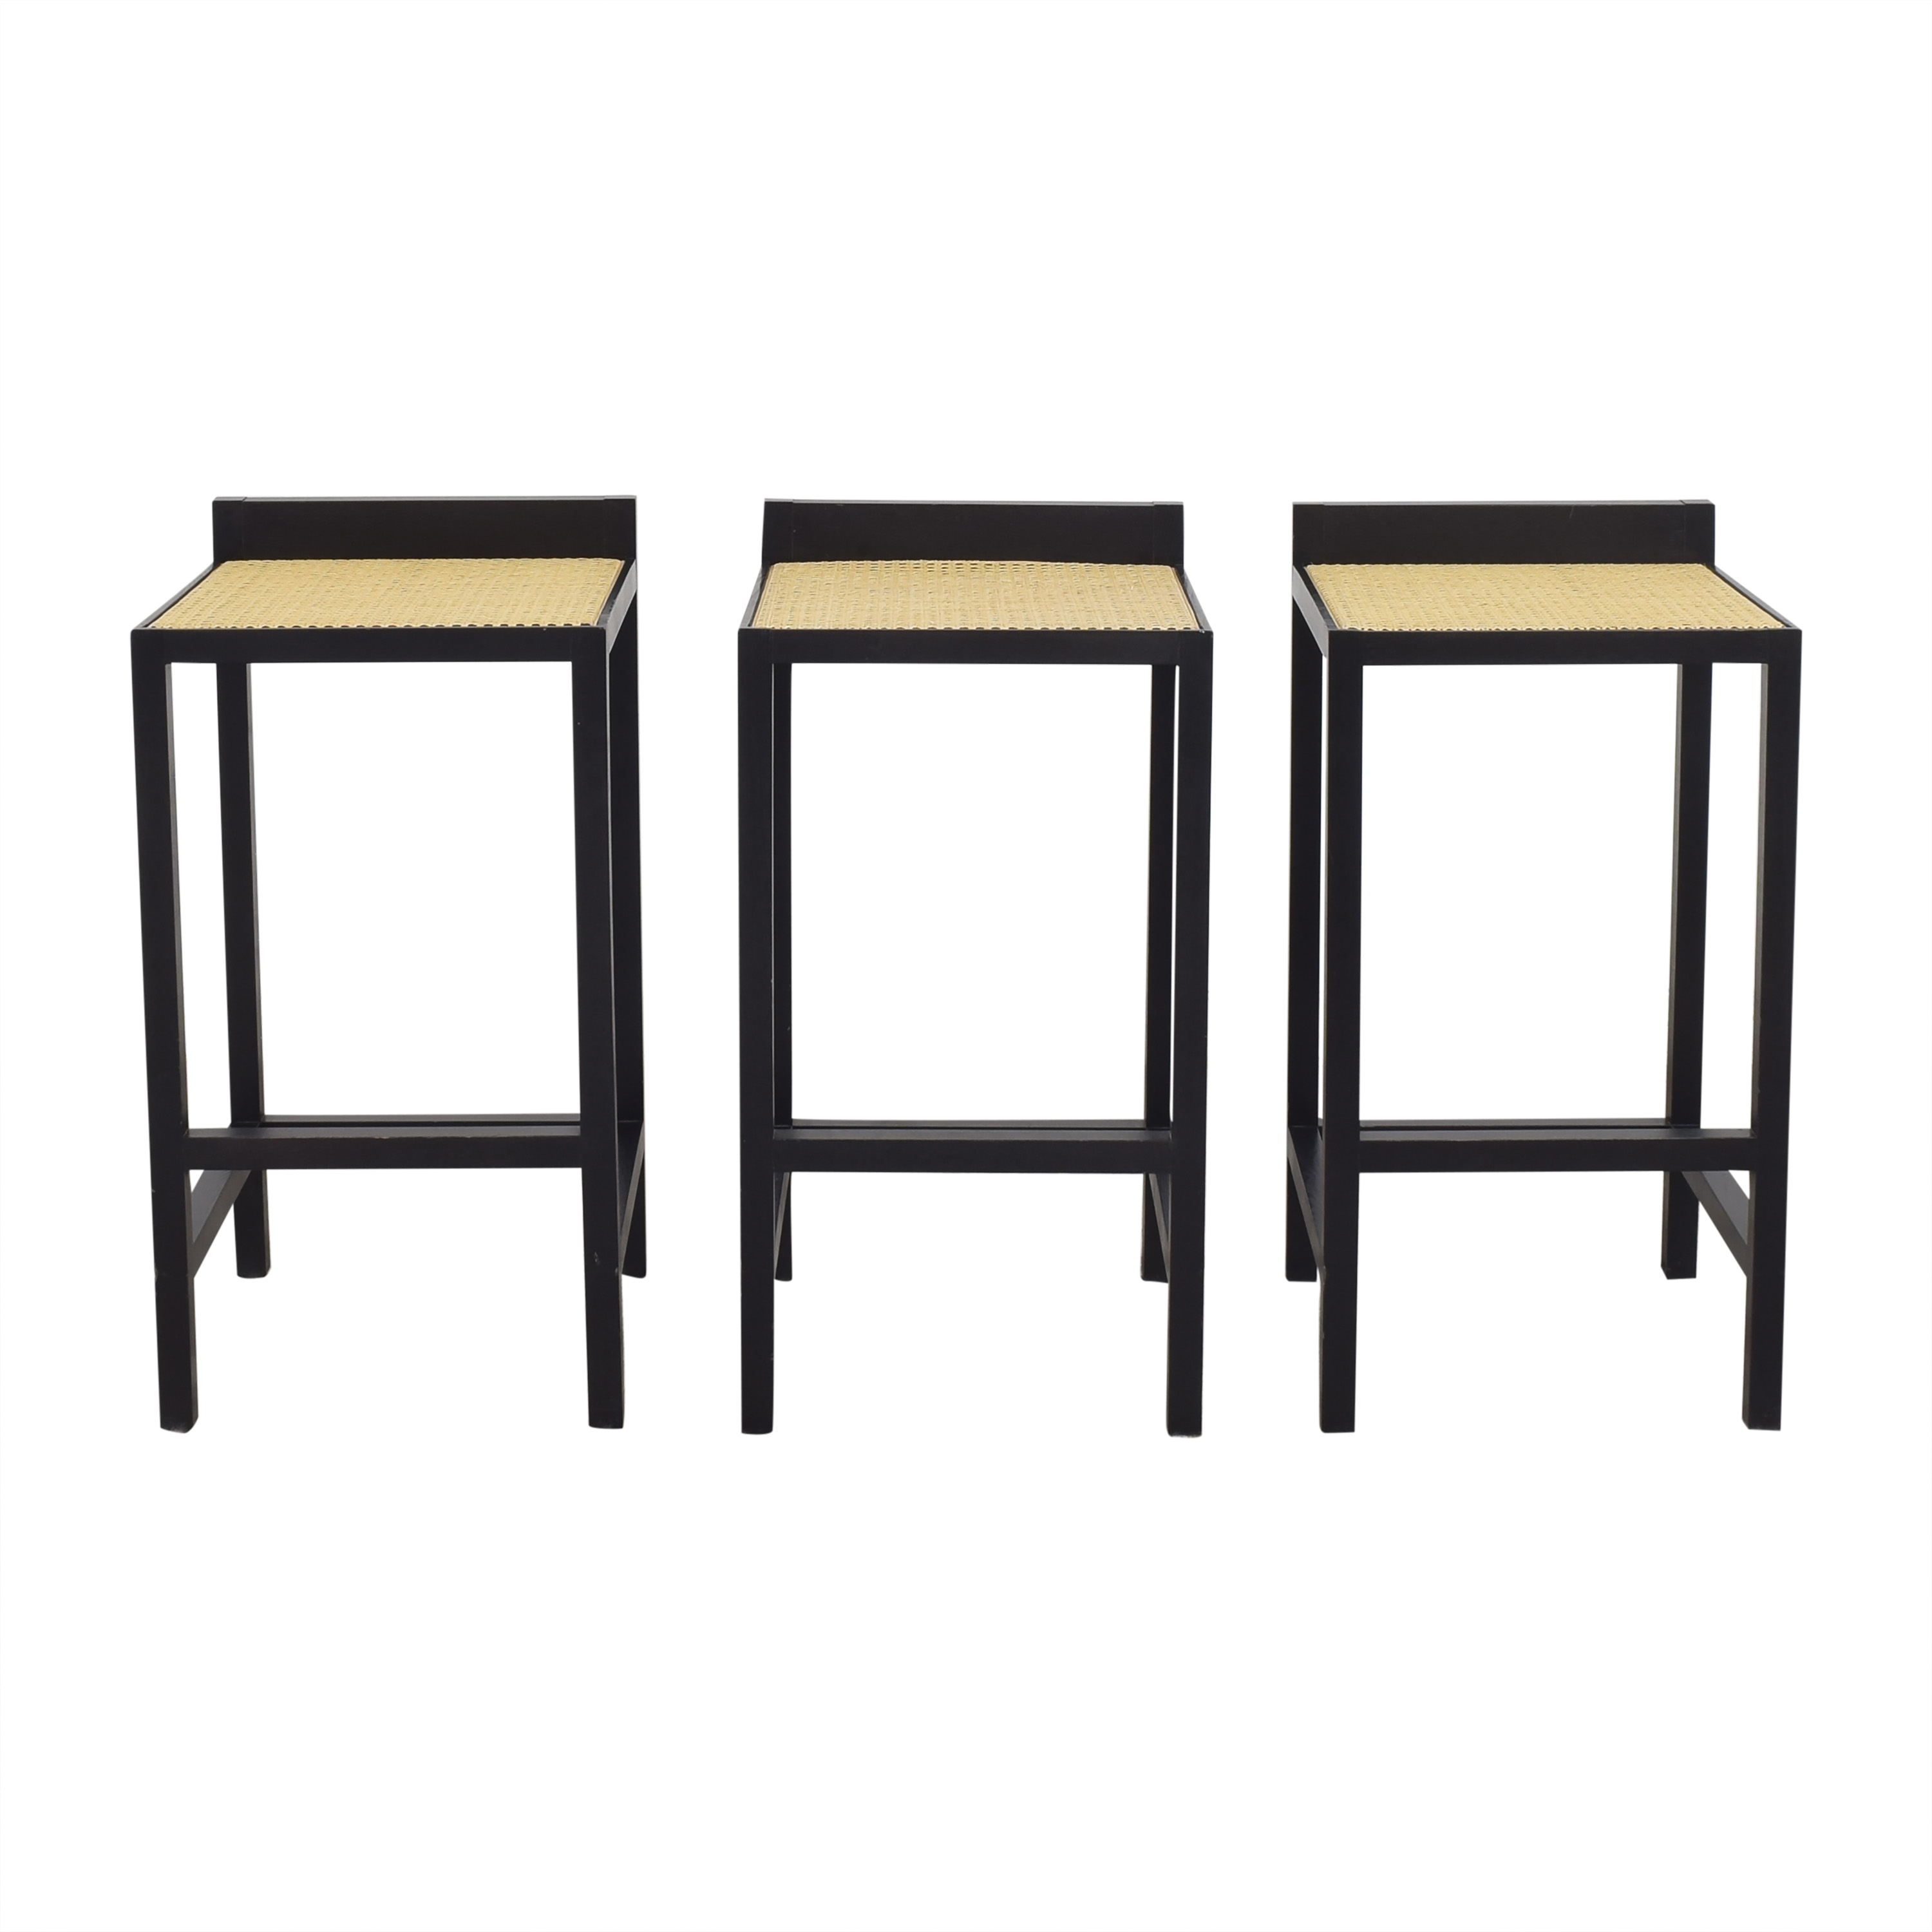 buy Porventura Alto Bar Stools Porventura Chairs